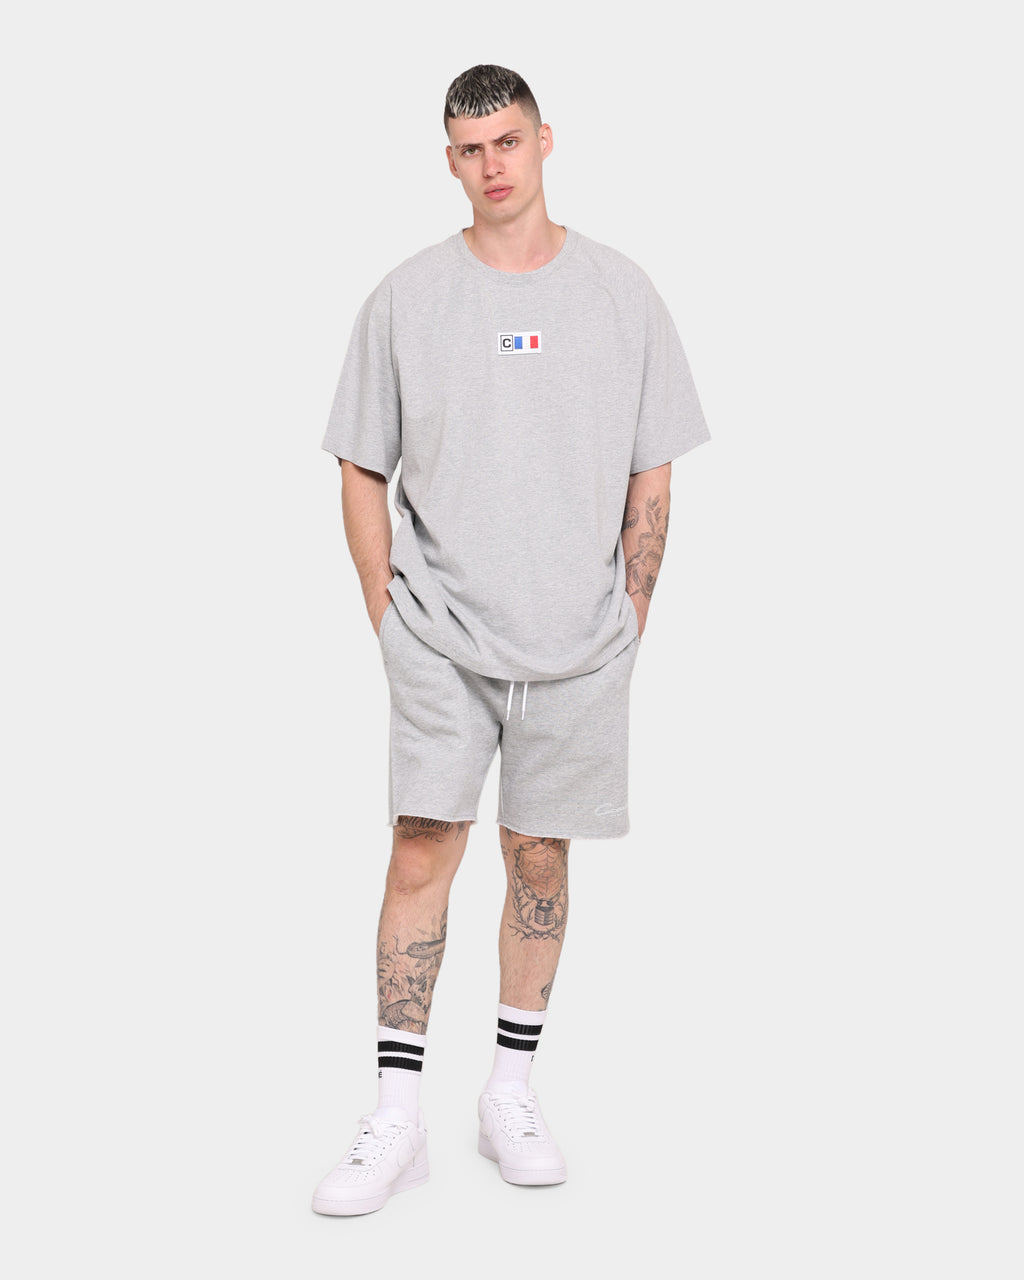 Carré Paris City Sweat Short Grey Marle